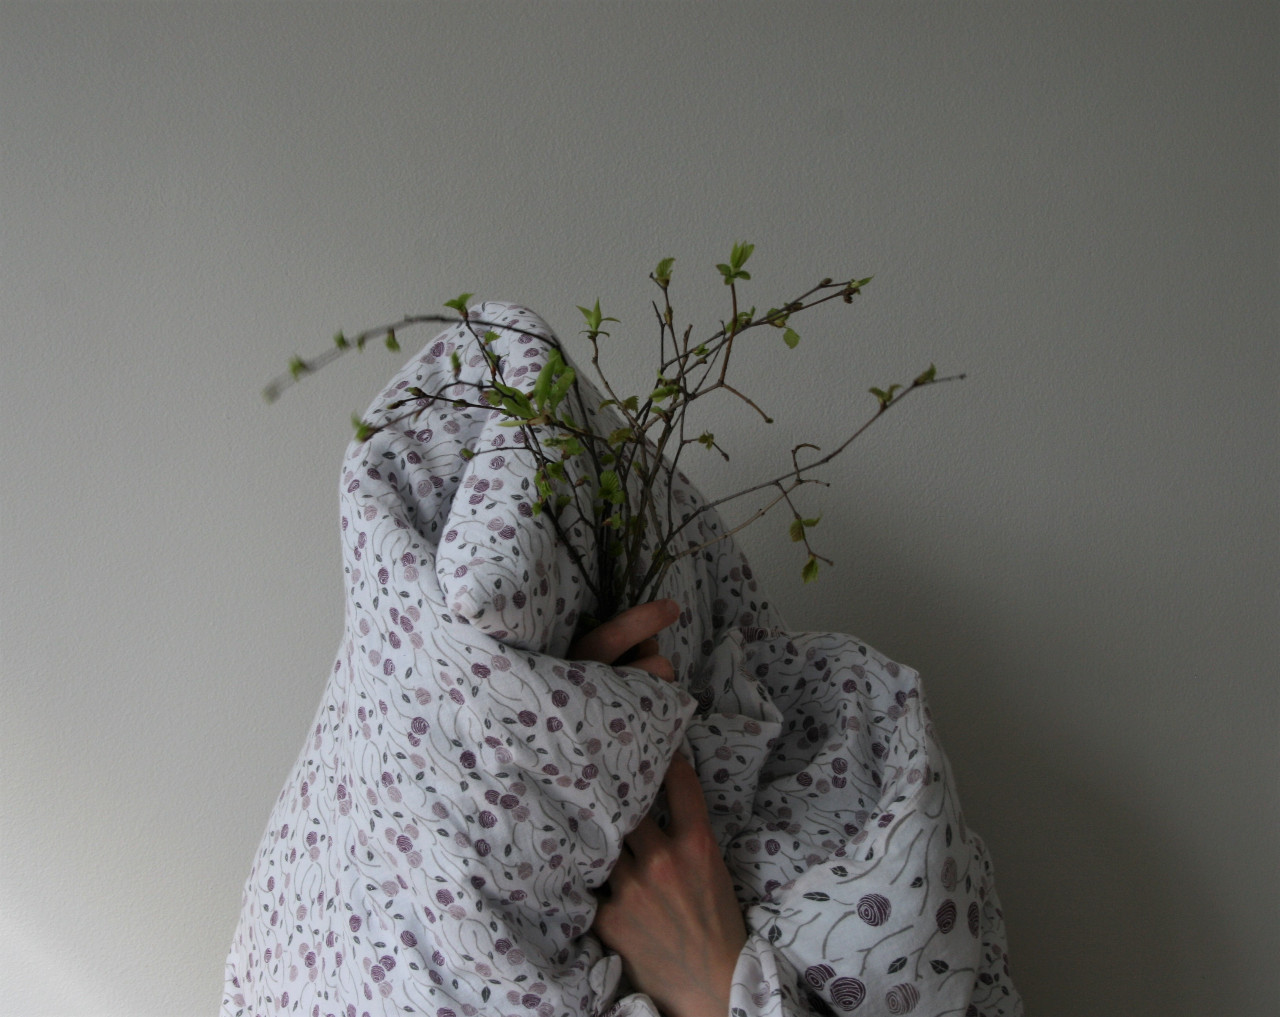 Duvet, branches from a birch tree (2020)